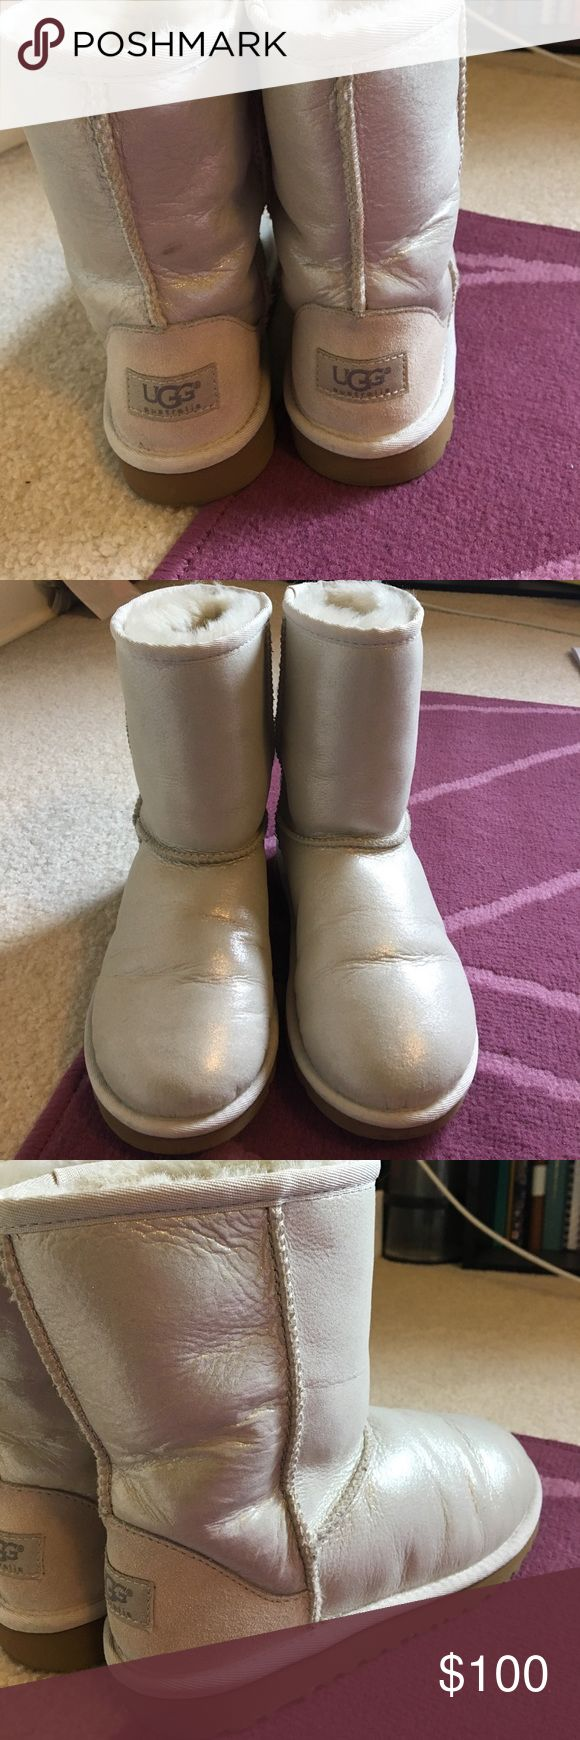 White shiny authentic classic short Ugg boots Only worn twice. Like new Ugg boots. Kids size 3. Women's size 5. Tiny scuff mark on back of left shoe (shown in picture). Make me an offer!! UGG Shoes Winter & Rain Boots